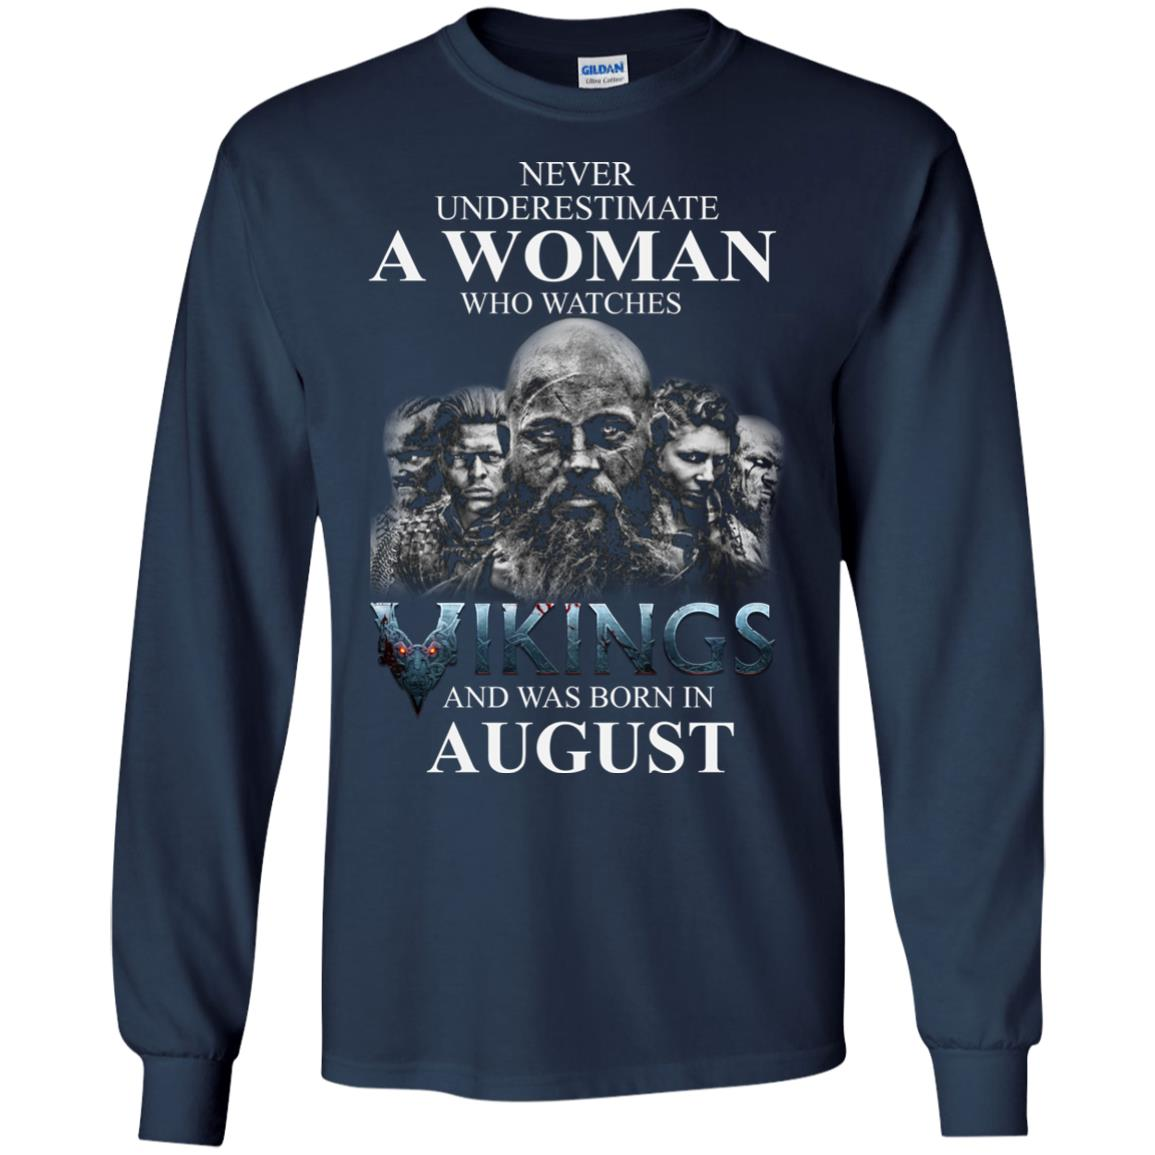 image 1270 - Never Underestimate A woman who watches Vikings and was born in August shirt